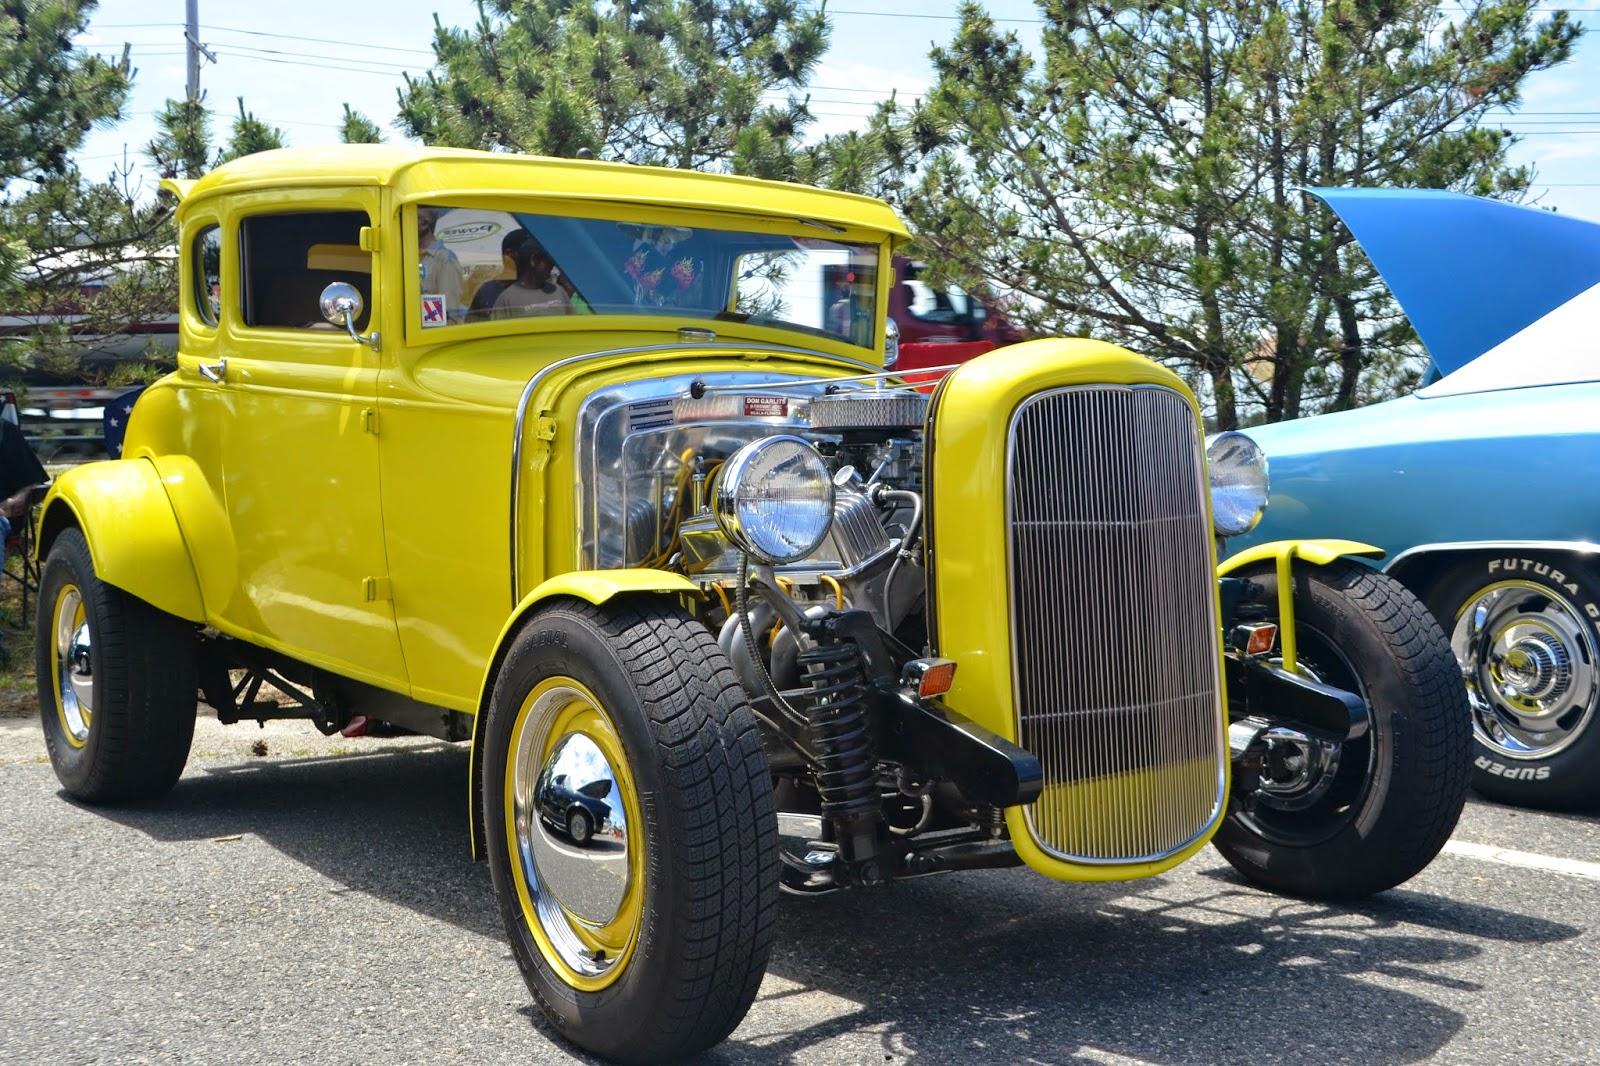 A hot rod on display at the 2015 Hot Rods and Food Trucks event in Seaside Heights. (File Photo)